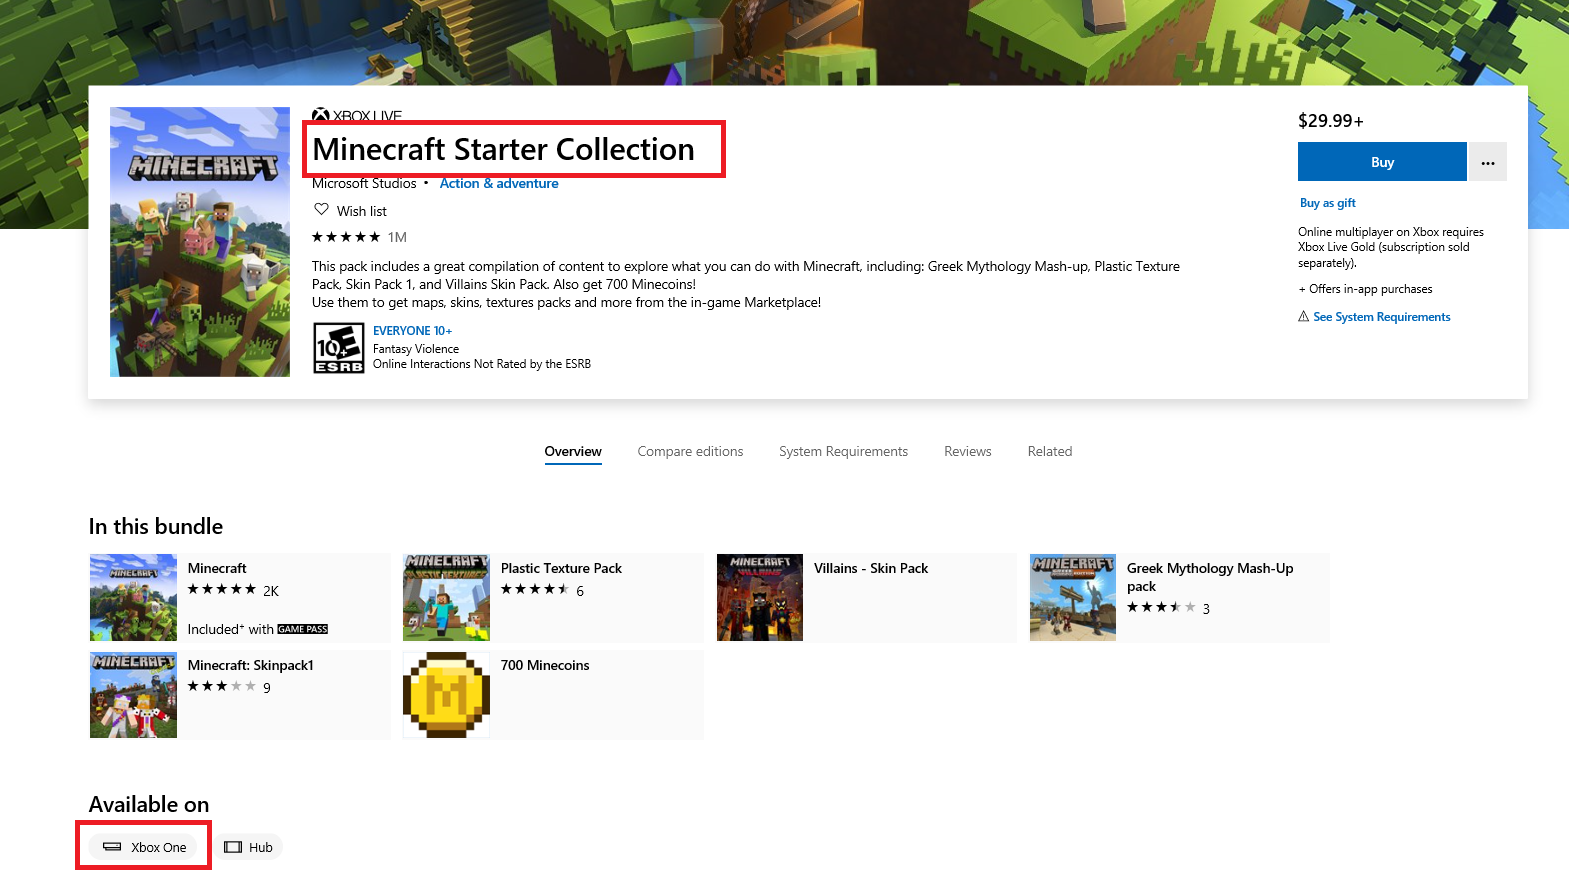 Windows 10 Minecraft starter collection shows I can install on pc but nothing happening... 862d3756-fb82-4174-b532-f47bed2d4c72?upload=true.png